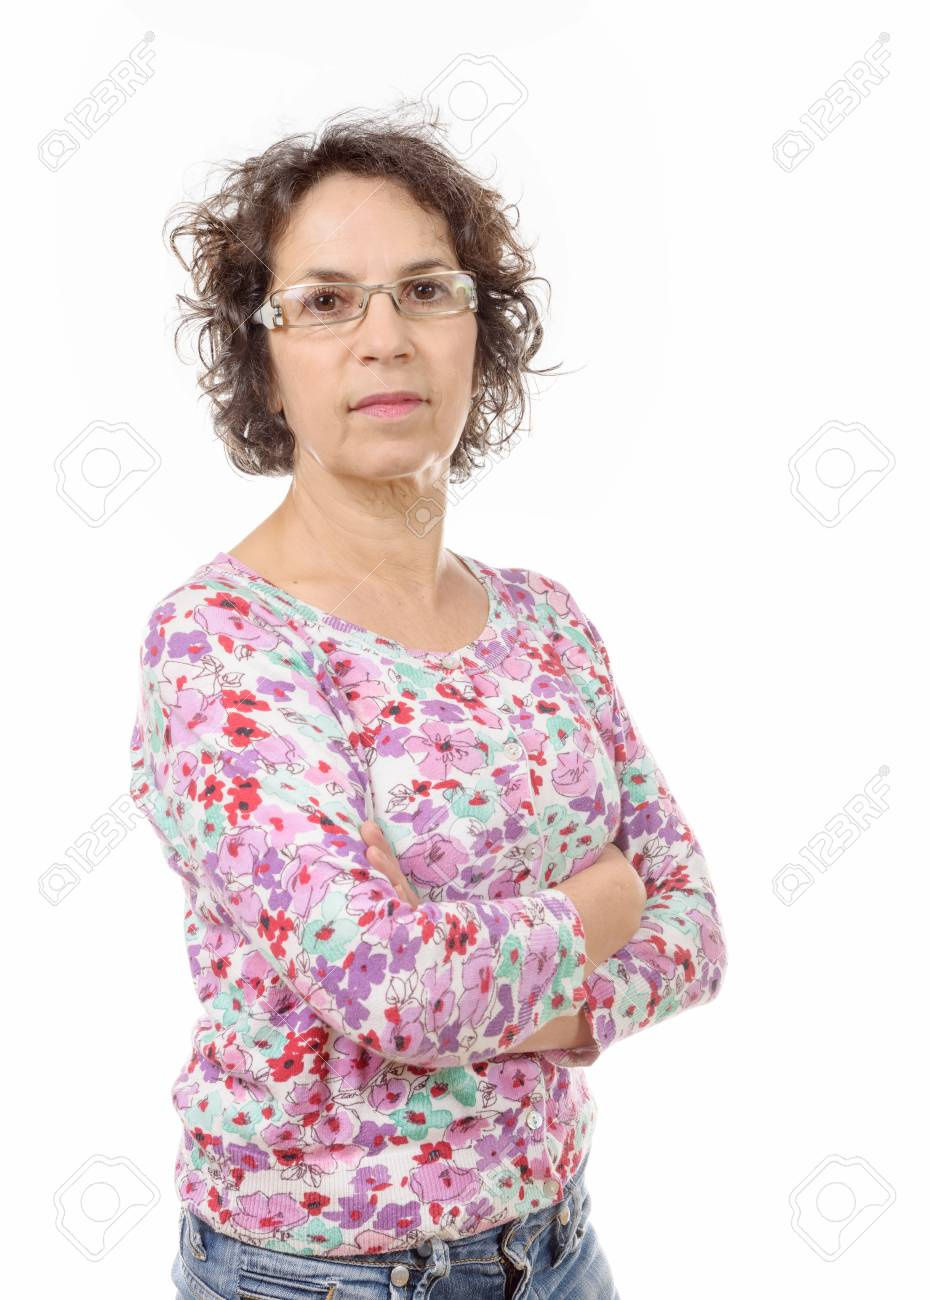 a portrait of happy aged woman over white background - 50135039